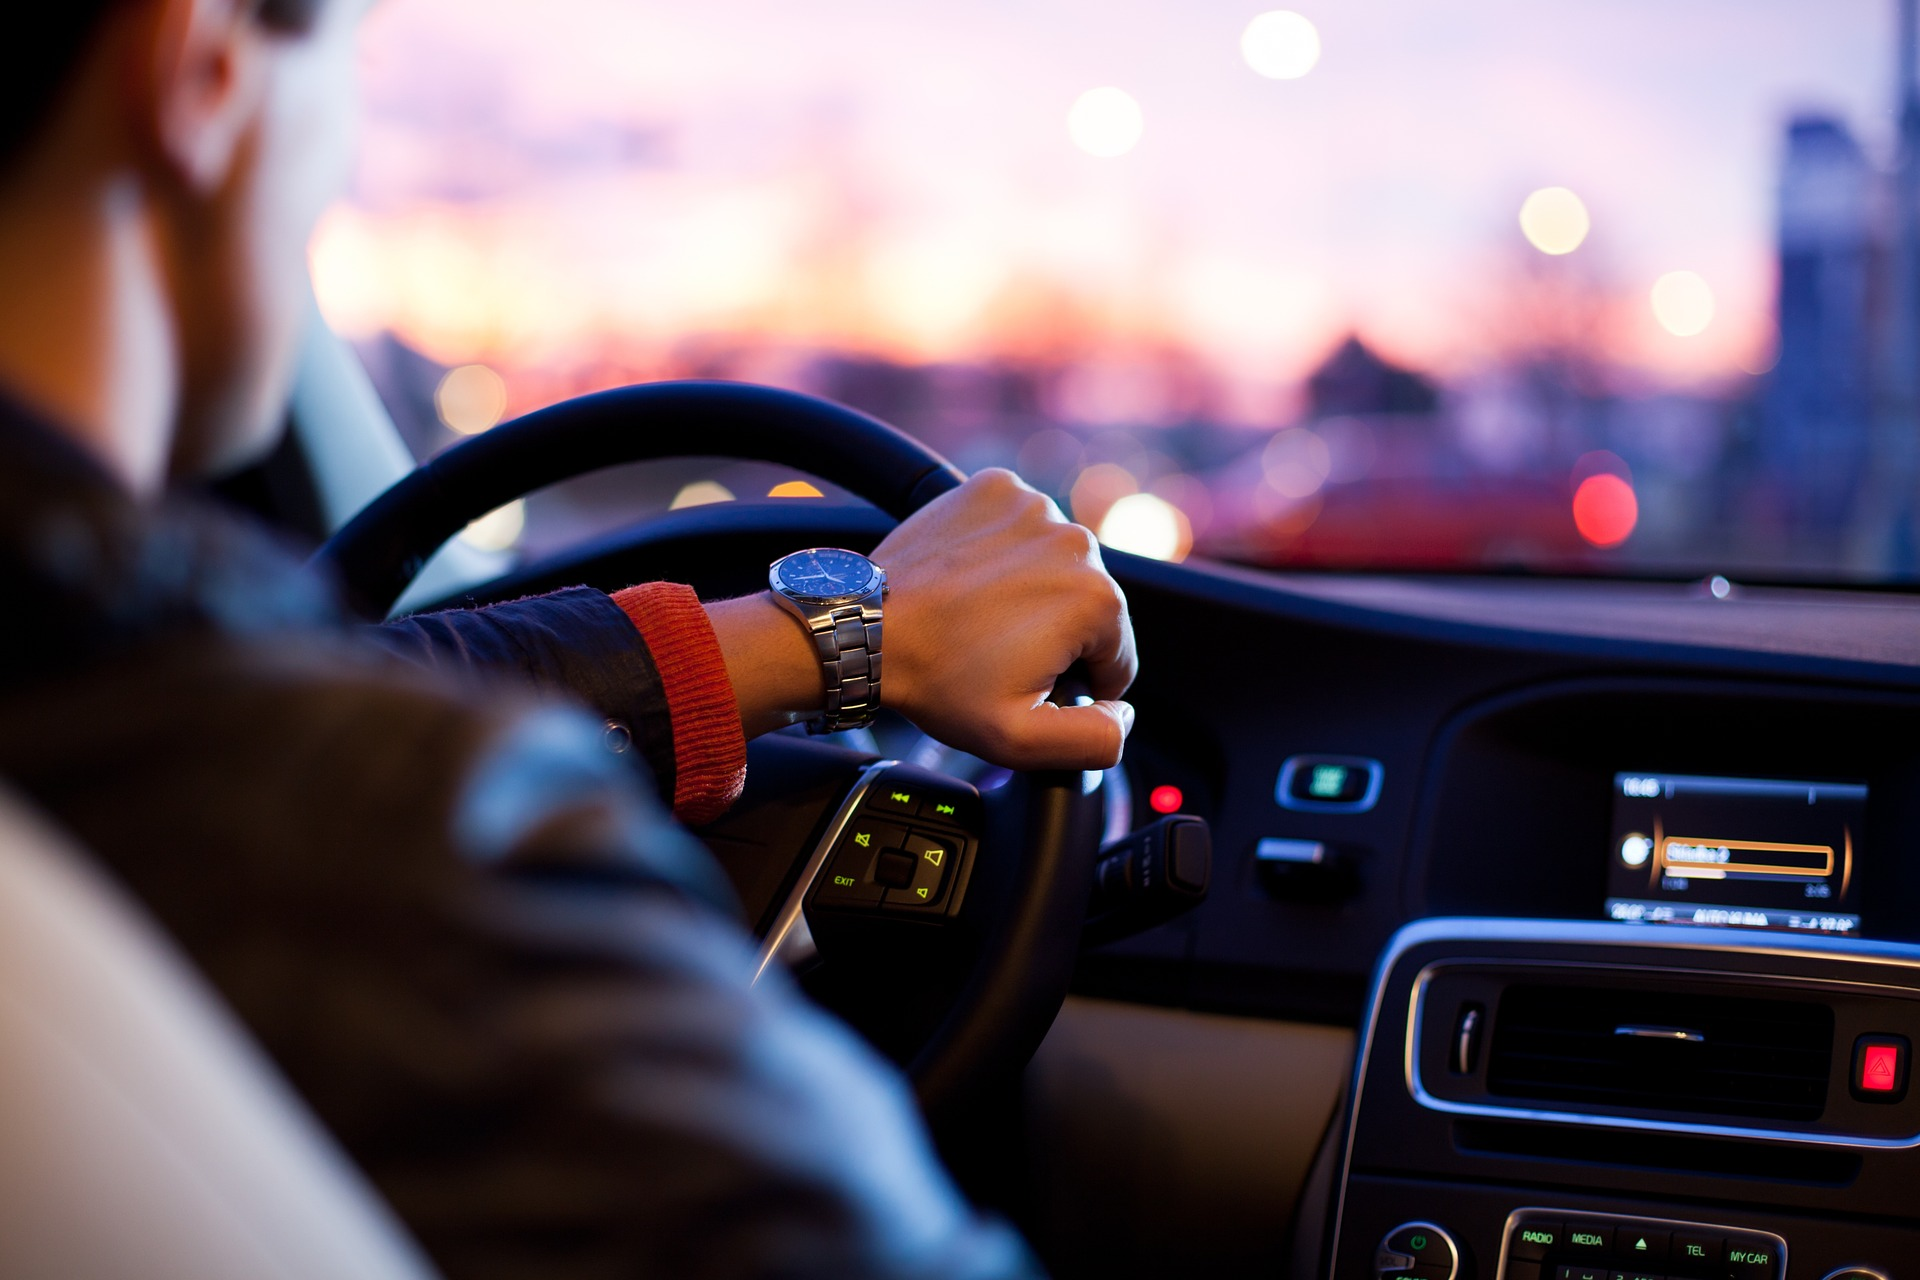 Does Untreated TIA Mean Avoid Driving?